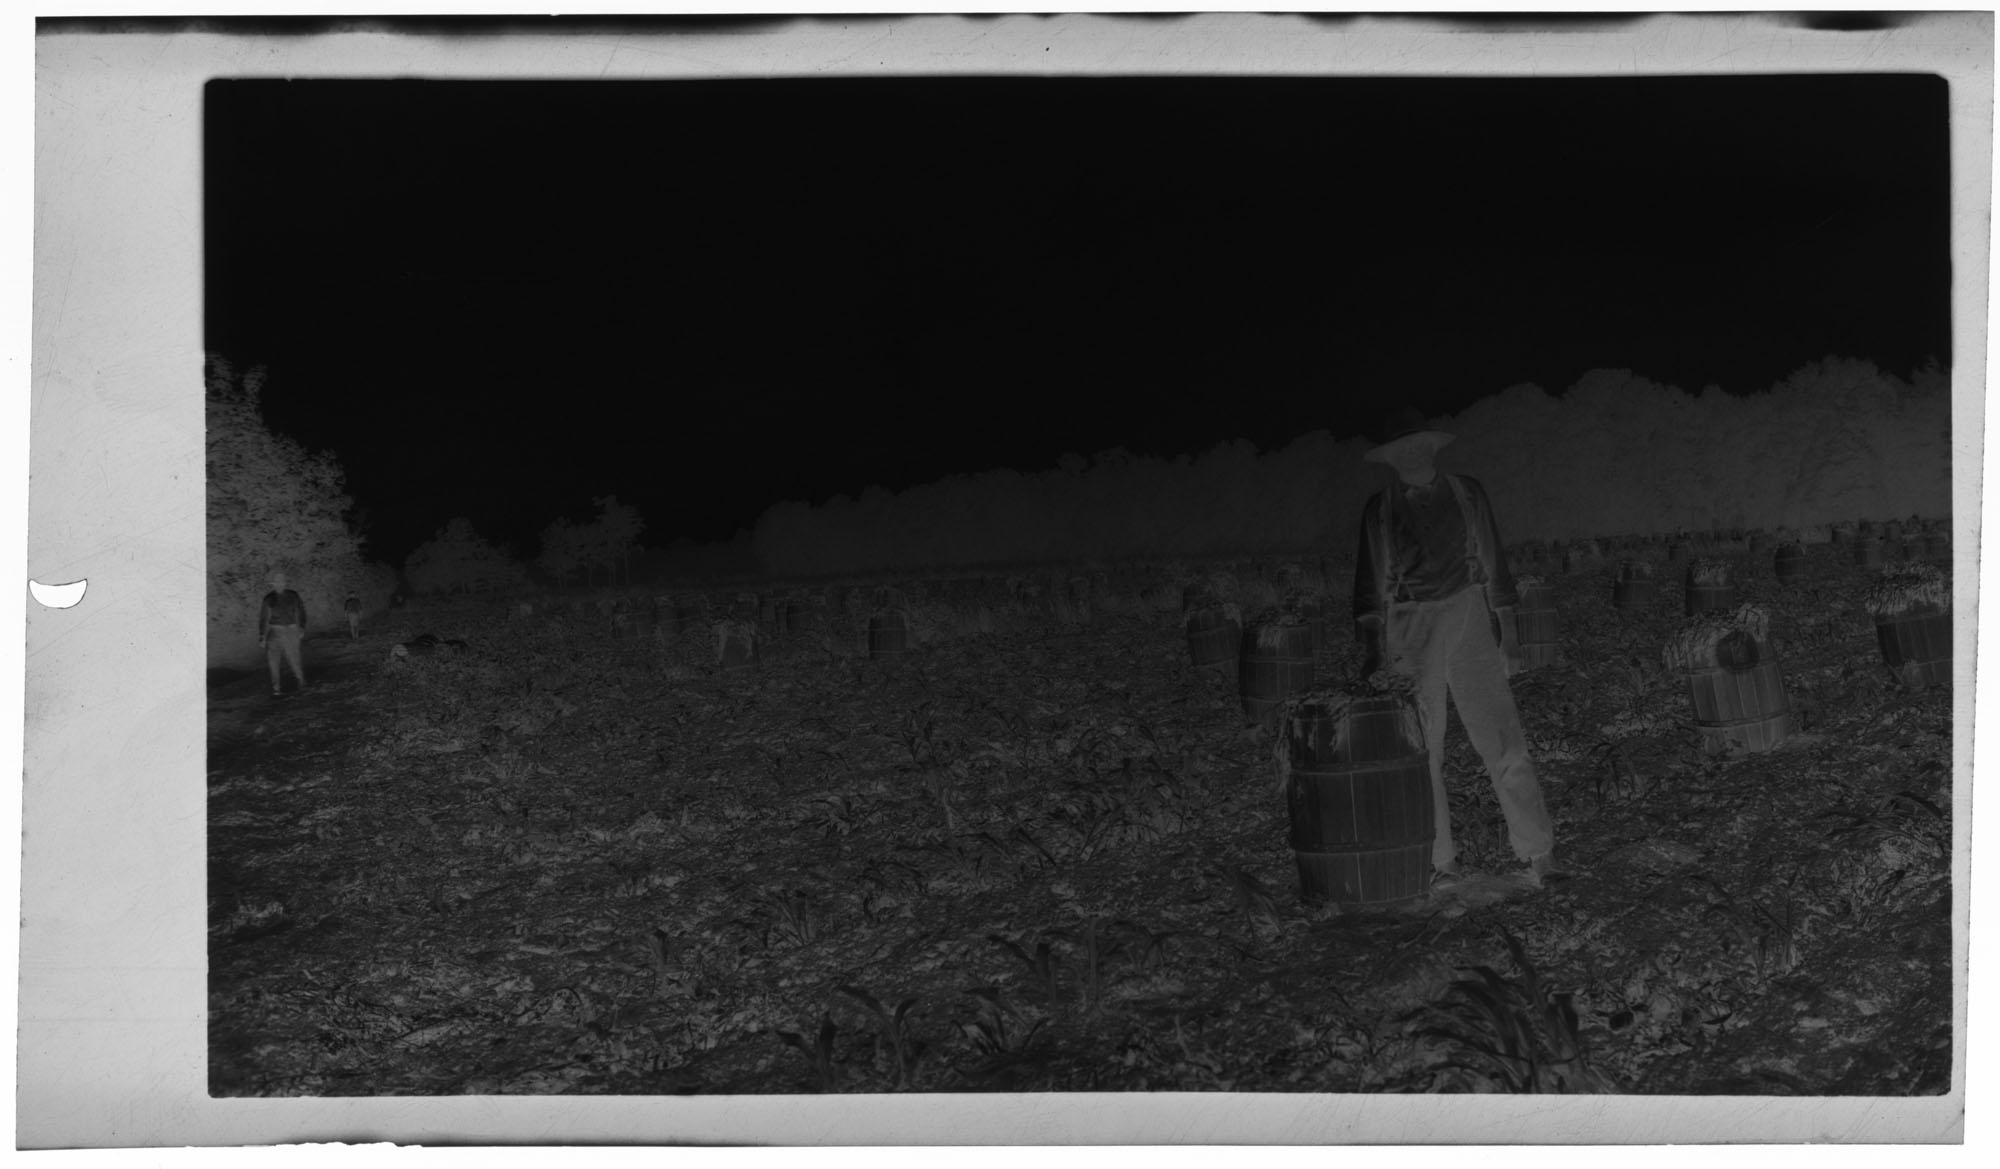 Negative of Man with Barrel